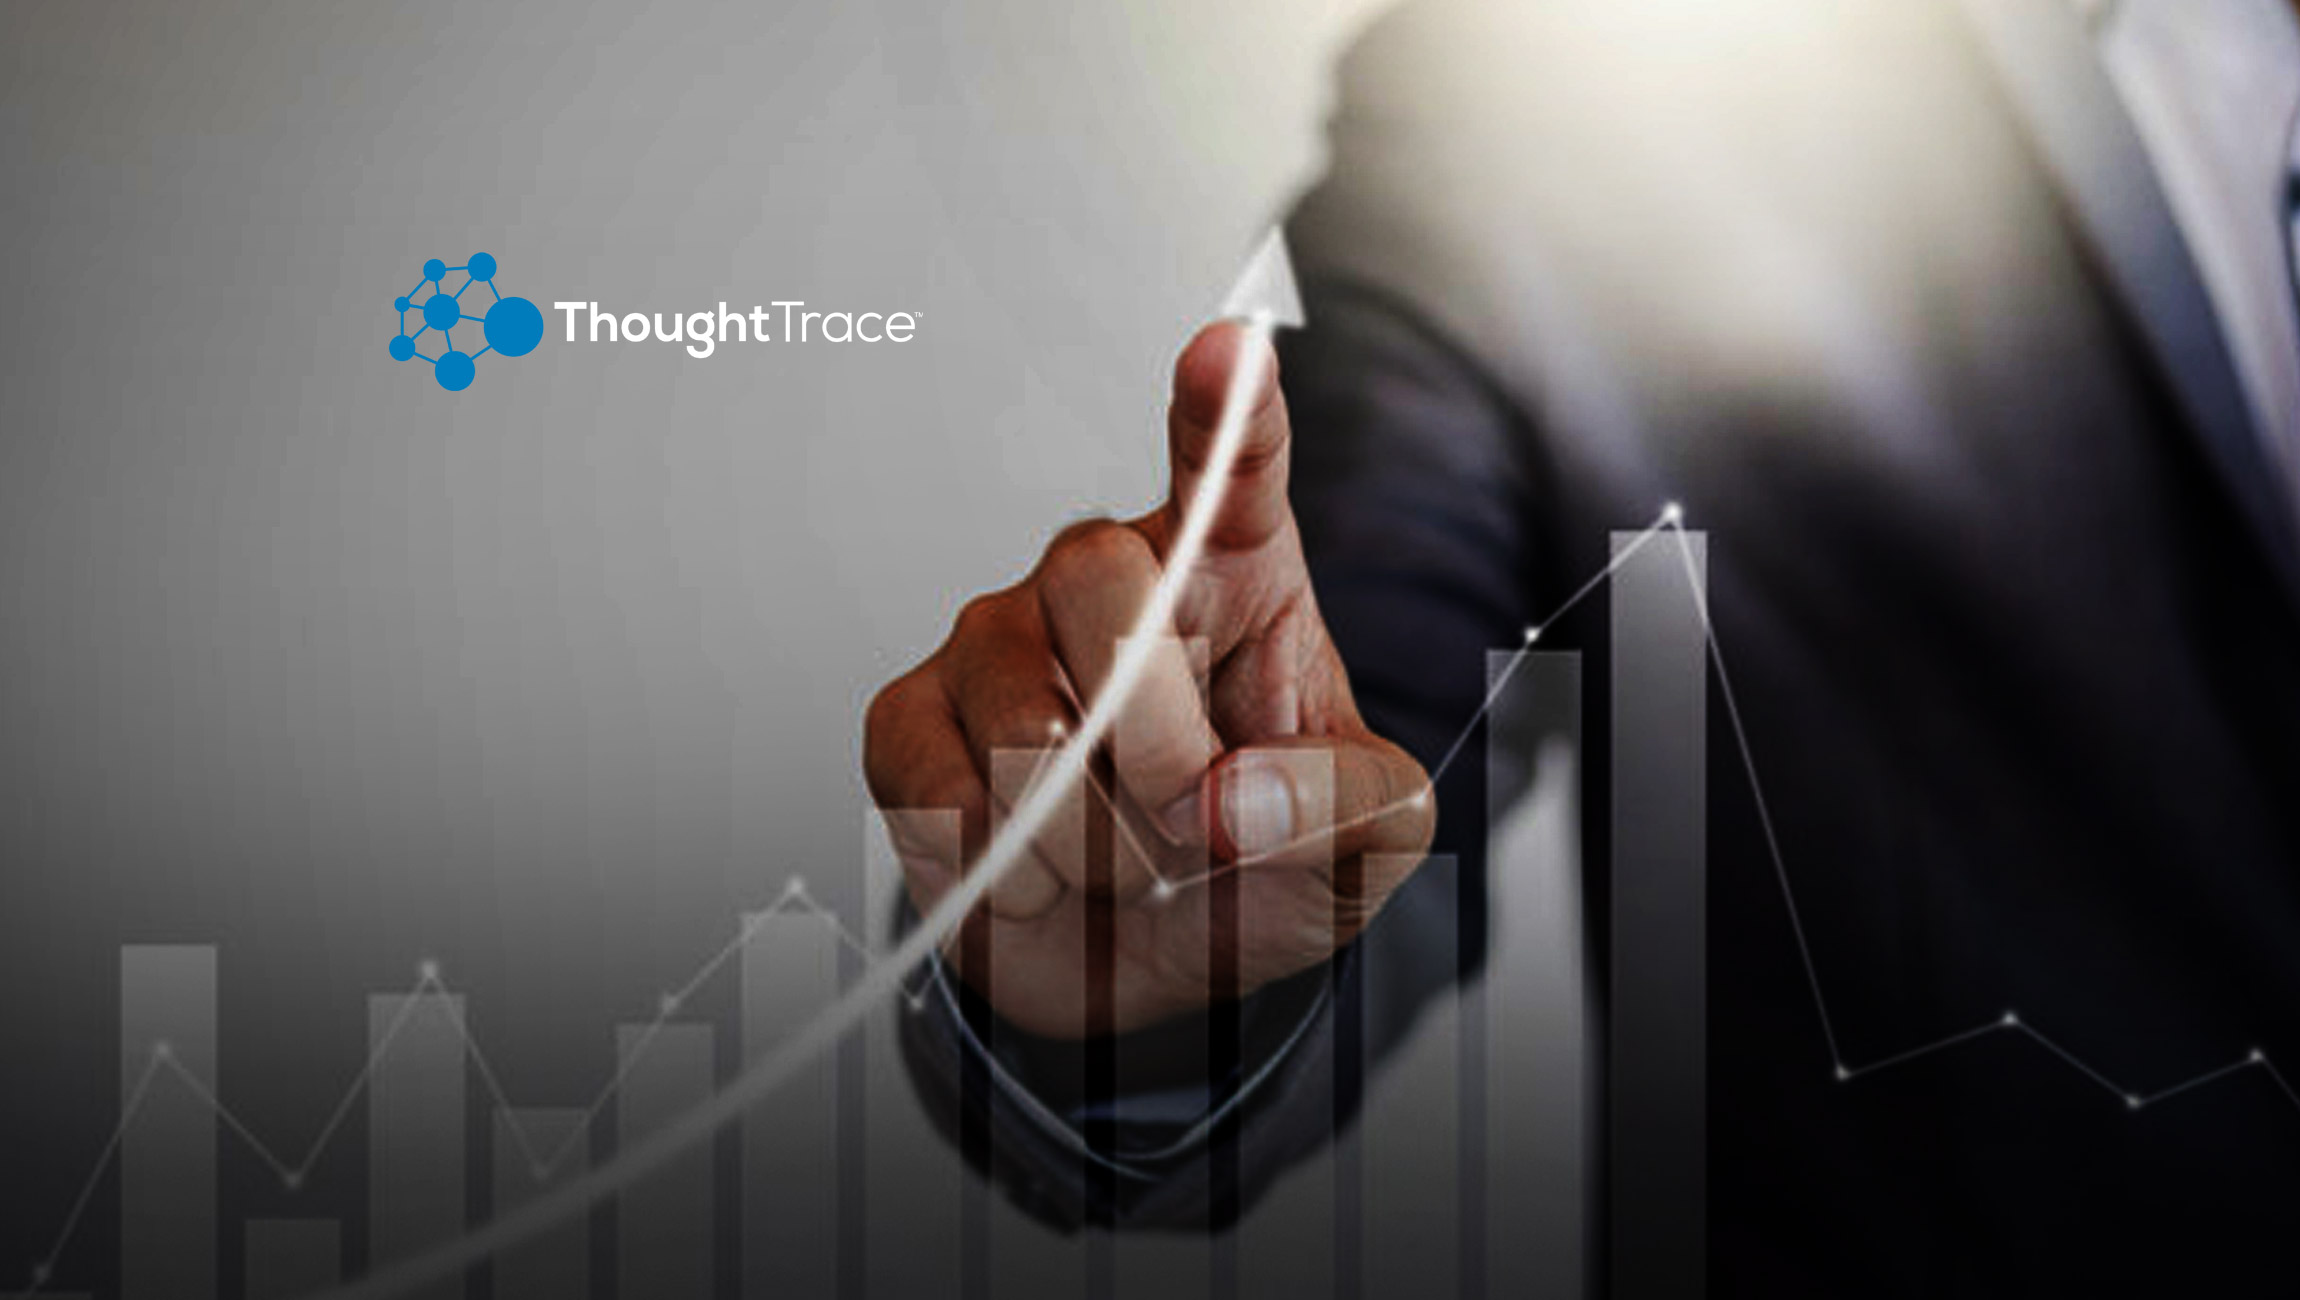 ThoughtTrace Unveils the First All-In-One A.I. Document Understanding and Management Platform